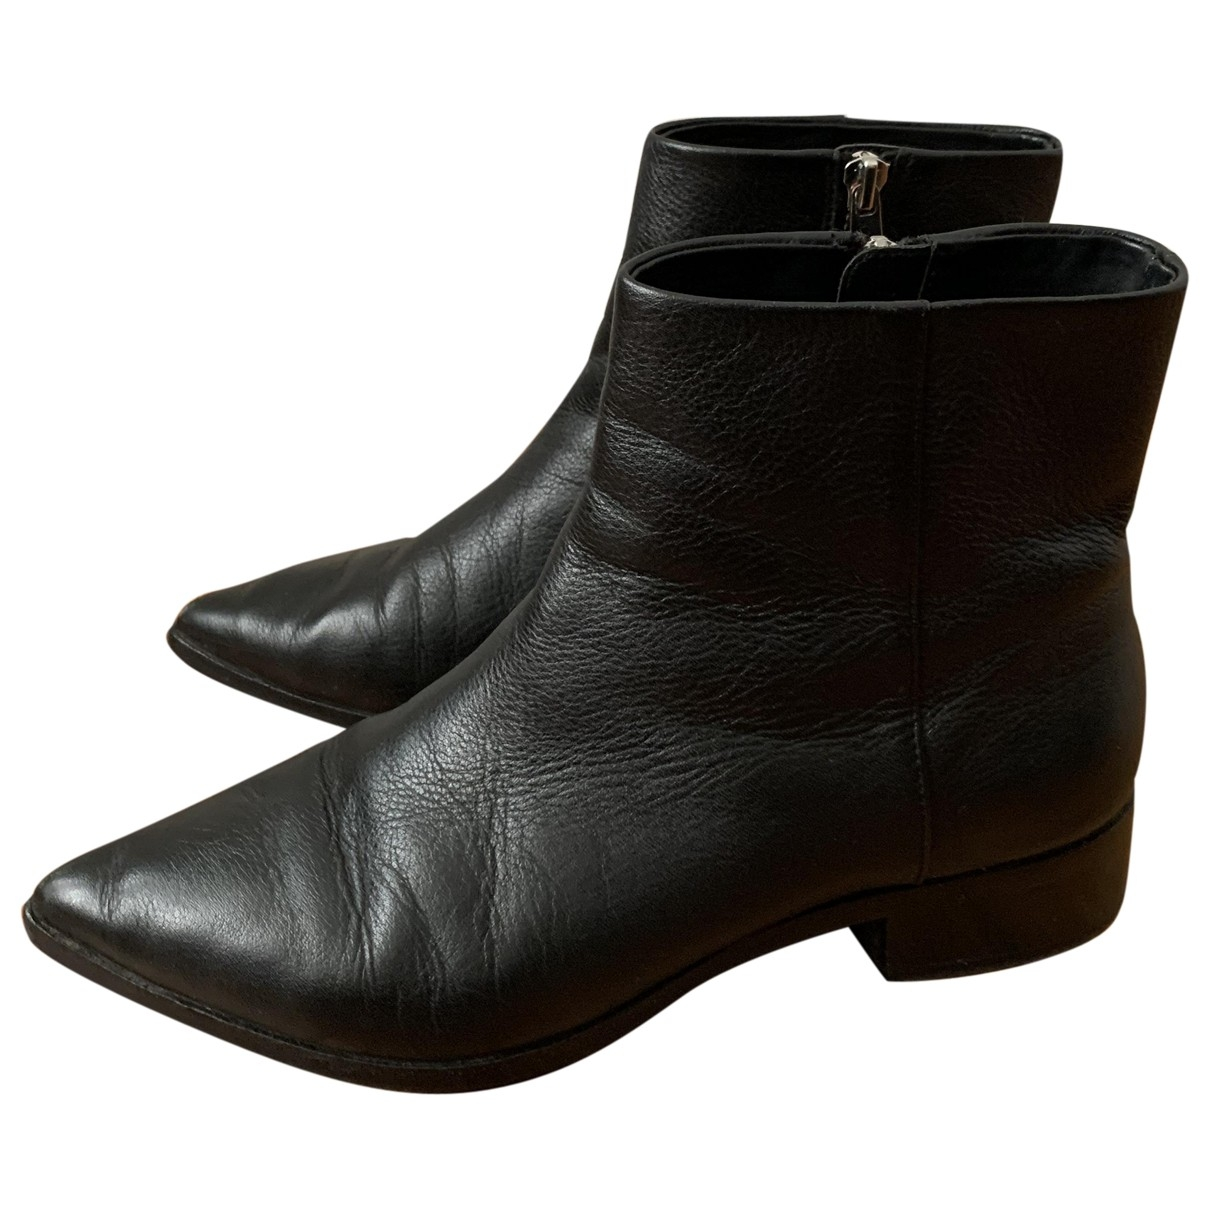 & Stories \N Black Leather Ankle boots for Women 38 EU